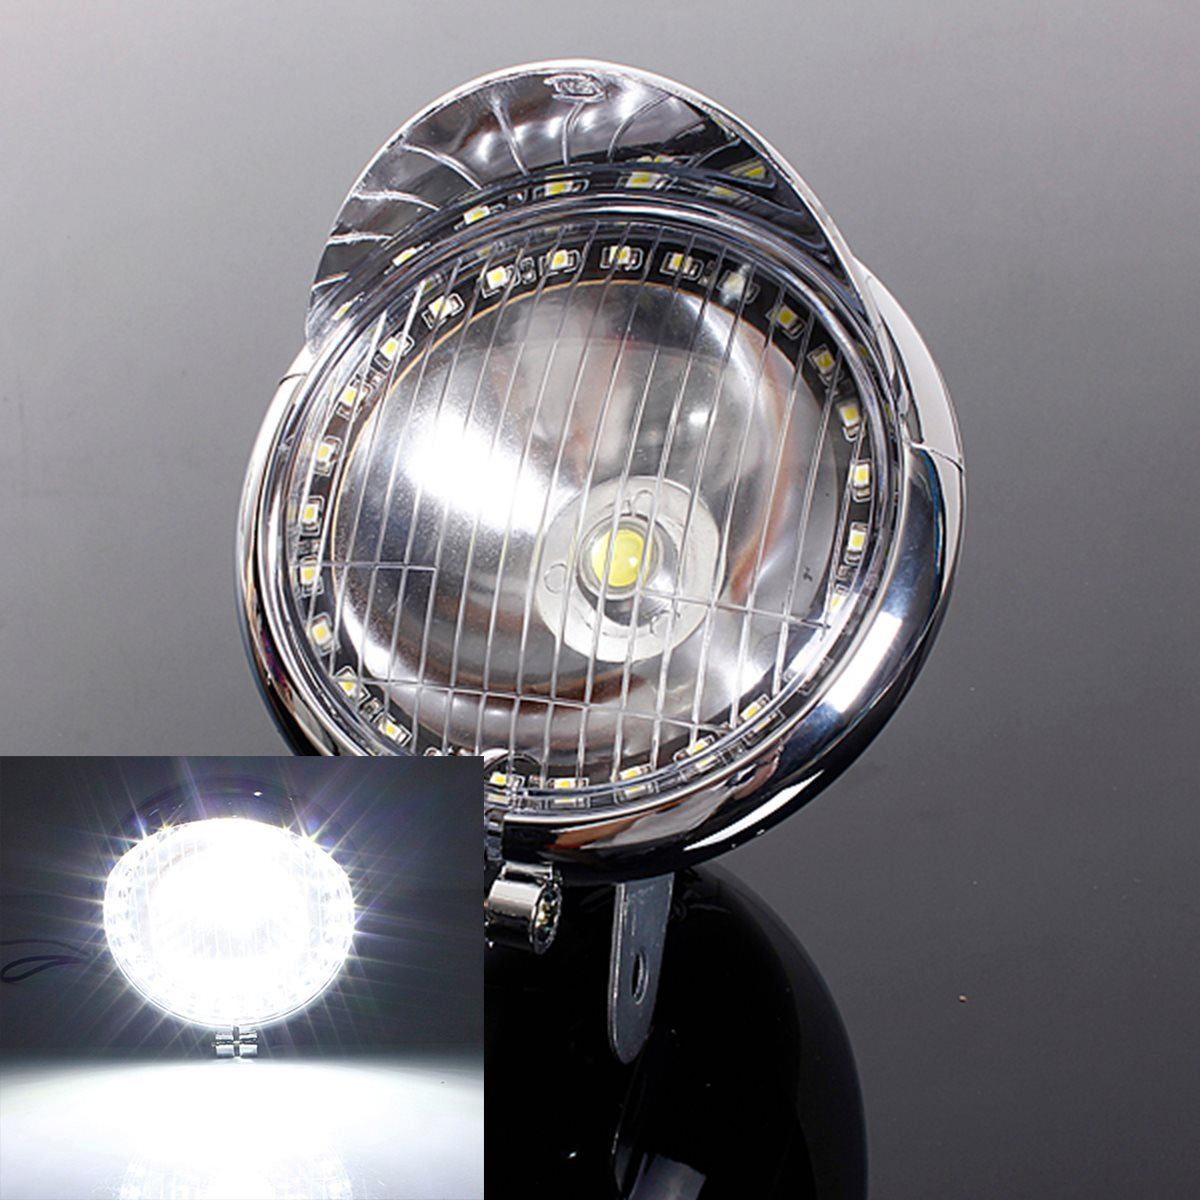 12V Motorcycle 27LED Angel Eye Light Fog Light 1COB LED Headlight Lamp For Harley Chopper Bobber